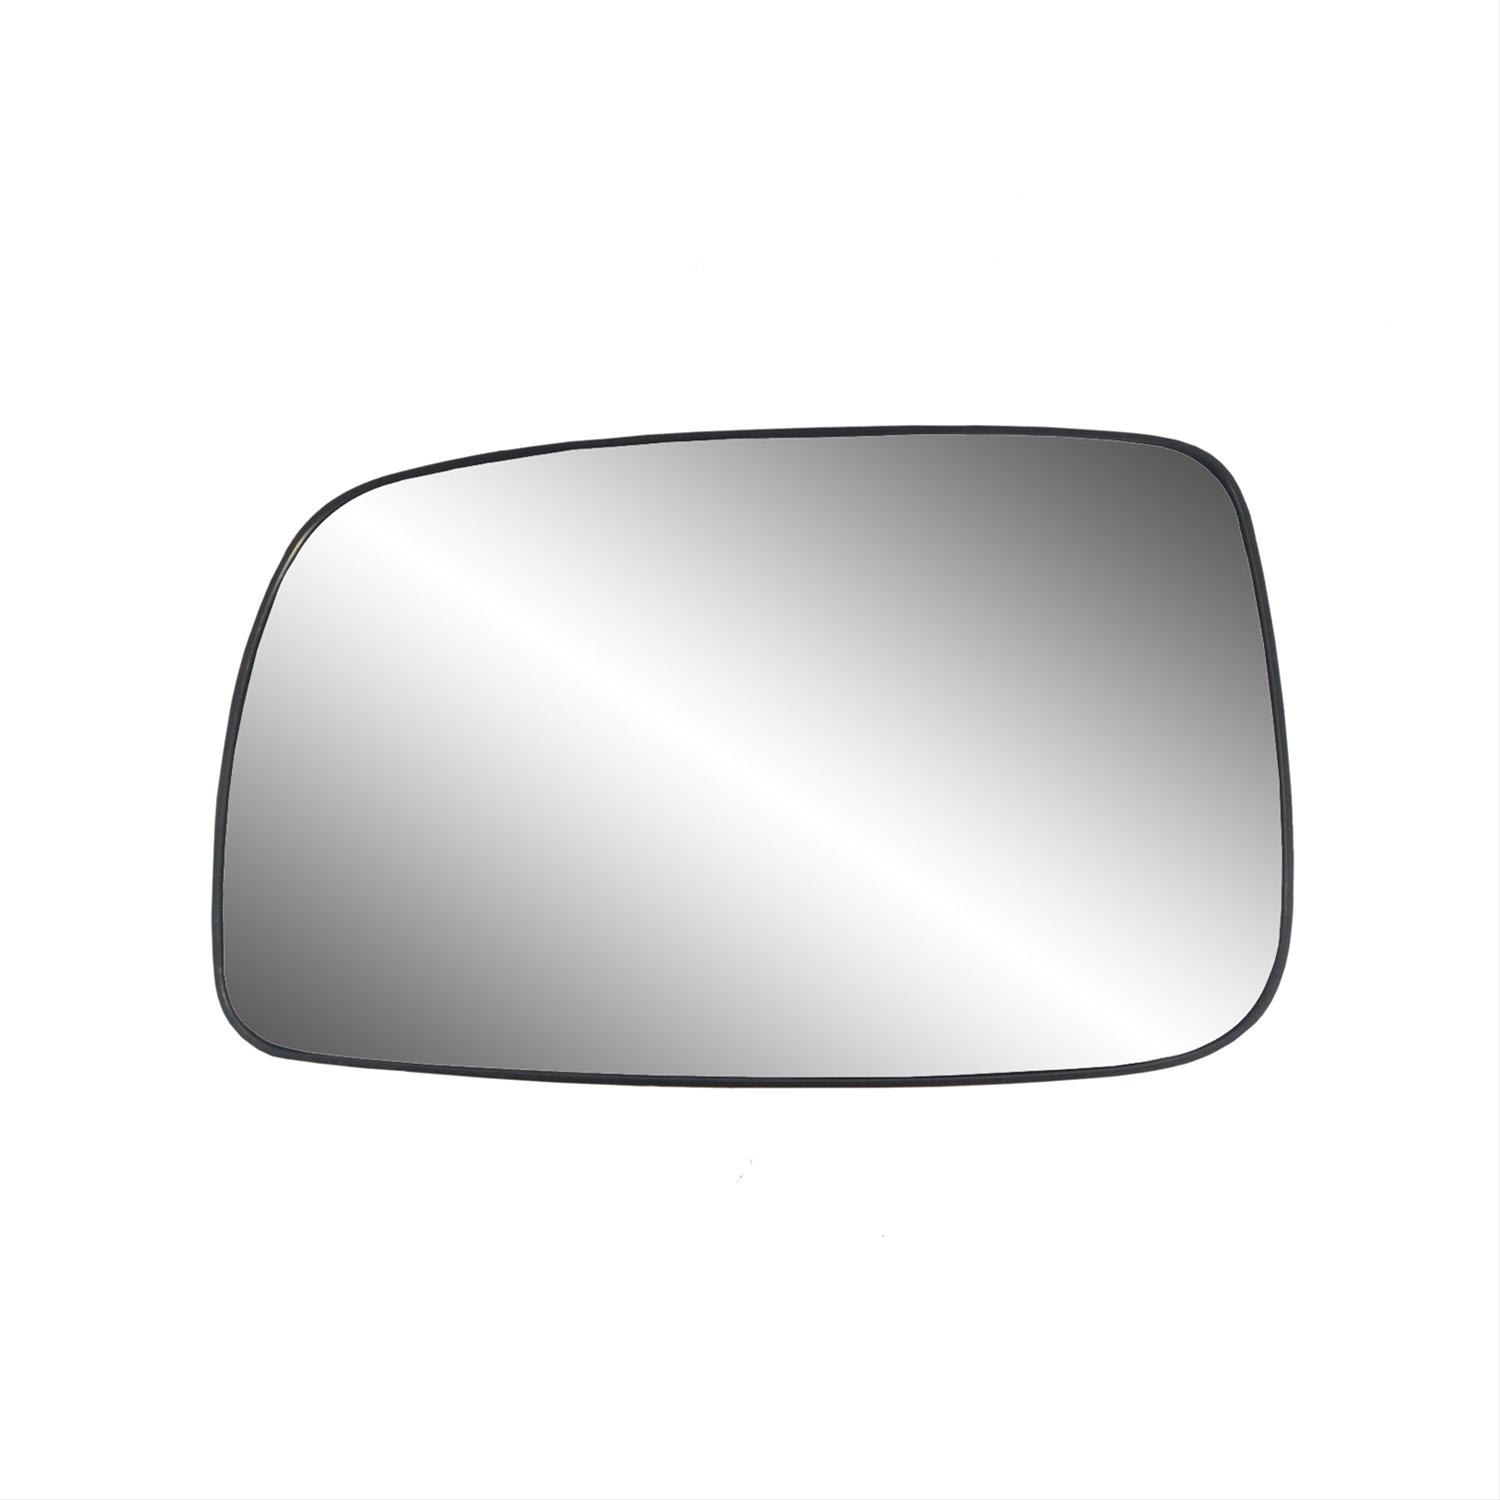 2008 Toyota Camry K Source Replacement Mirror Gl 88205 Free Shipping On Orders Over 99 At Summit Racing